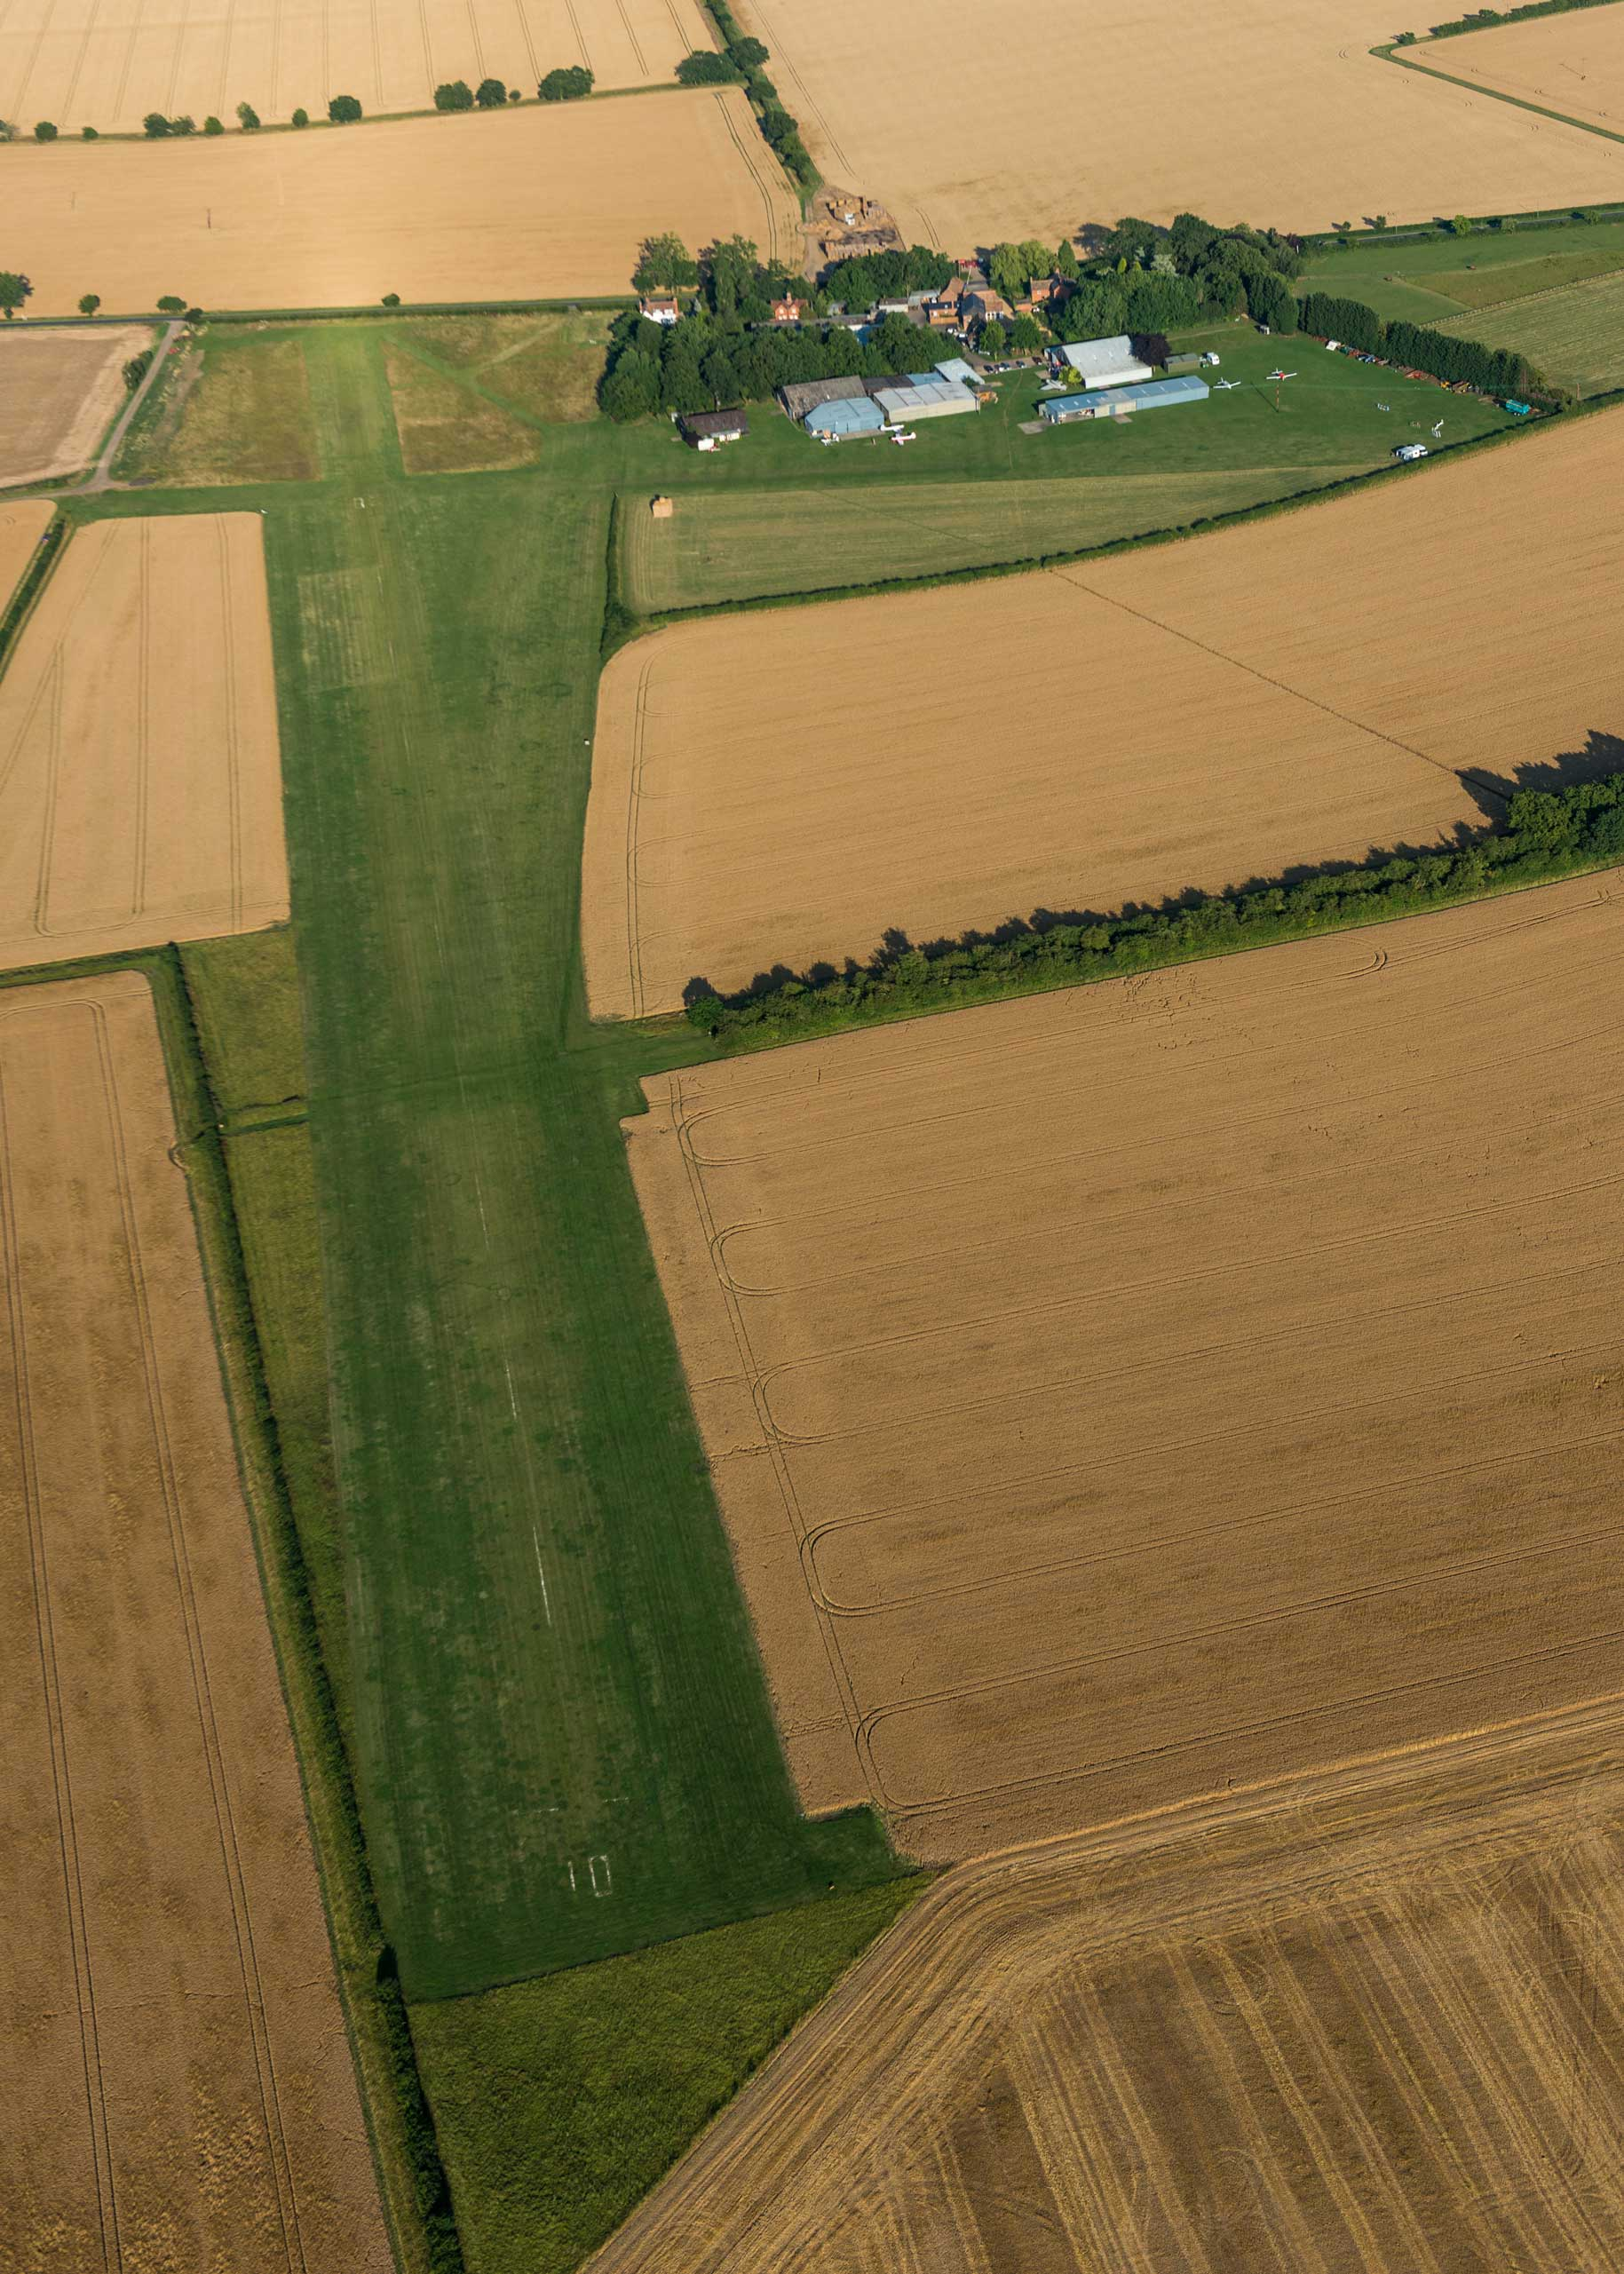 A view of the Little Gransden Airport and grass airstrip.